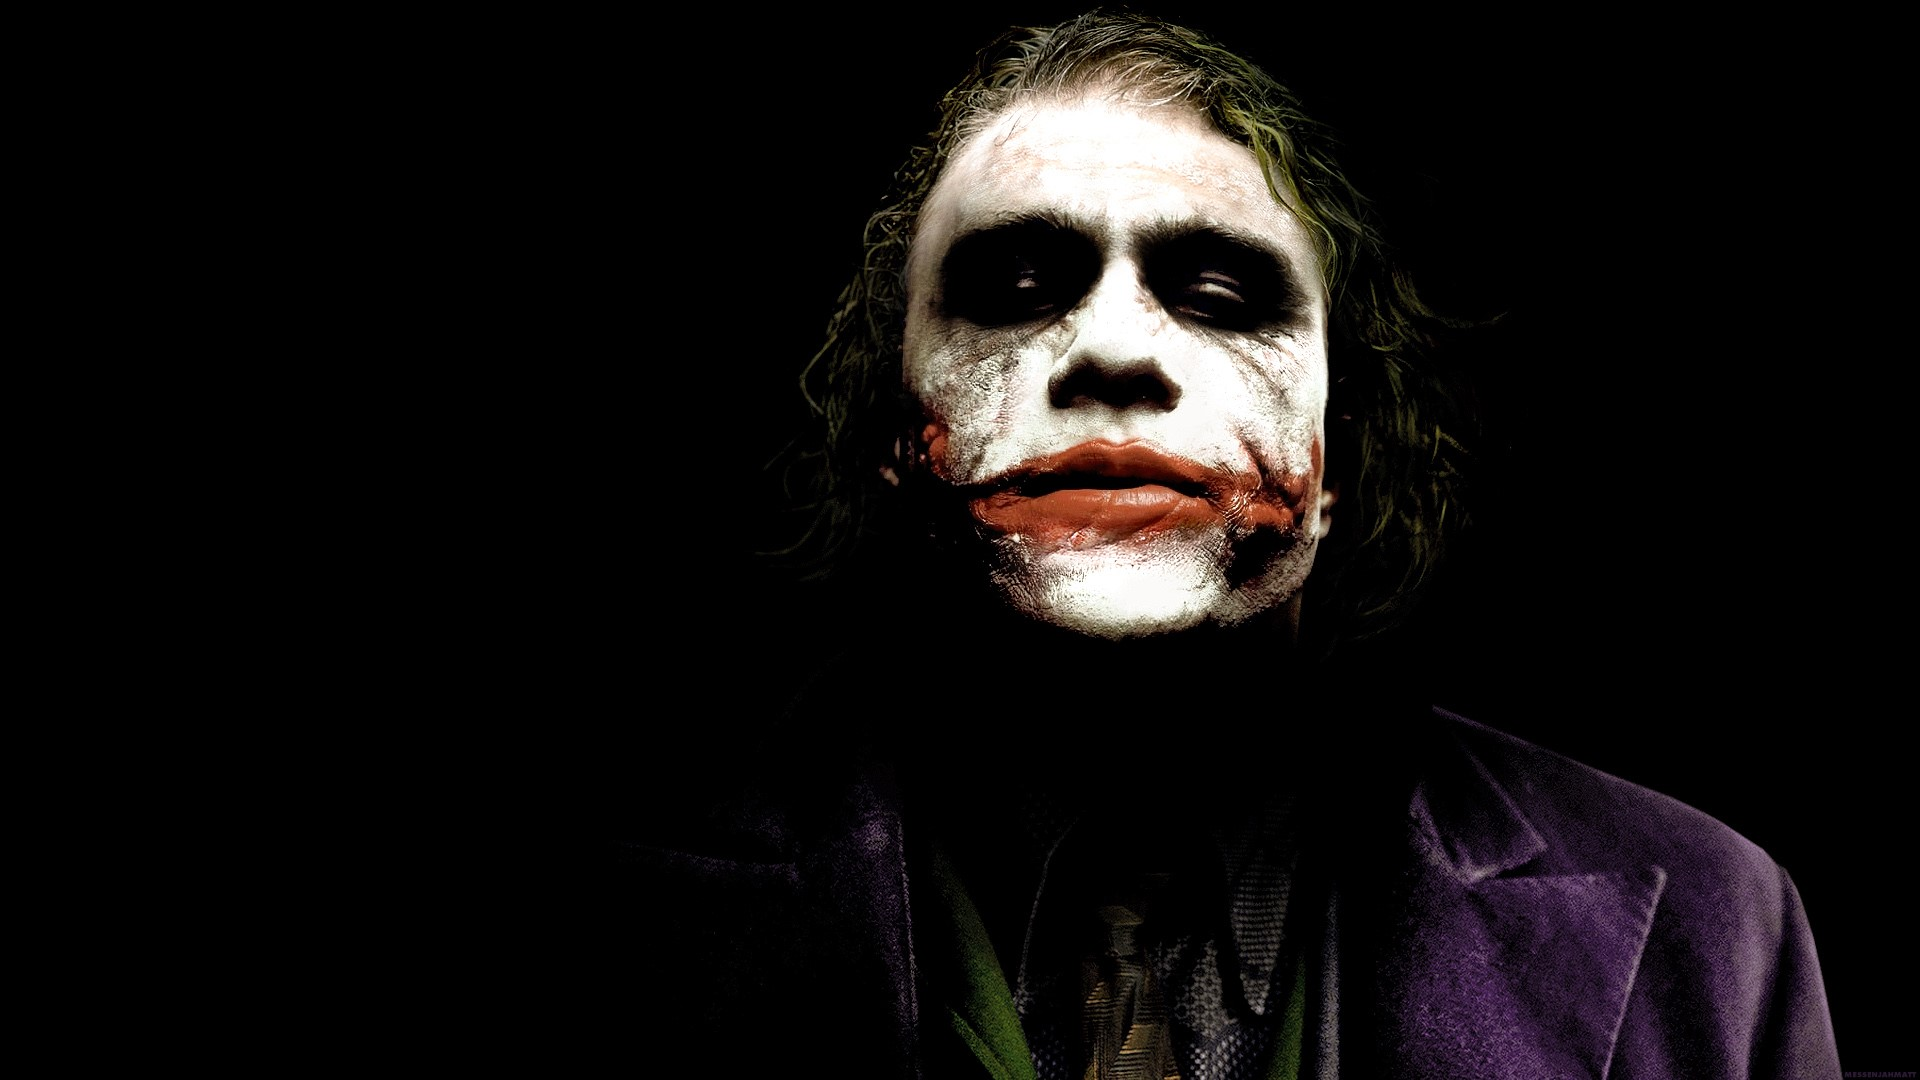 Joker uhd wallpapers